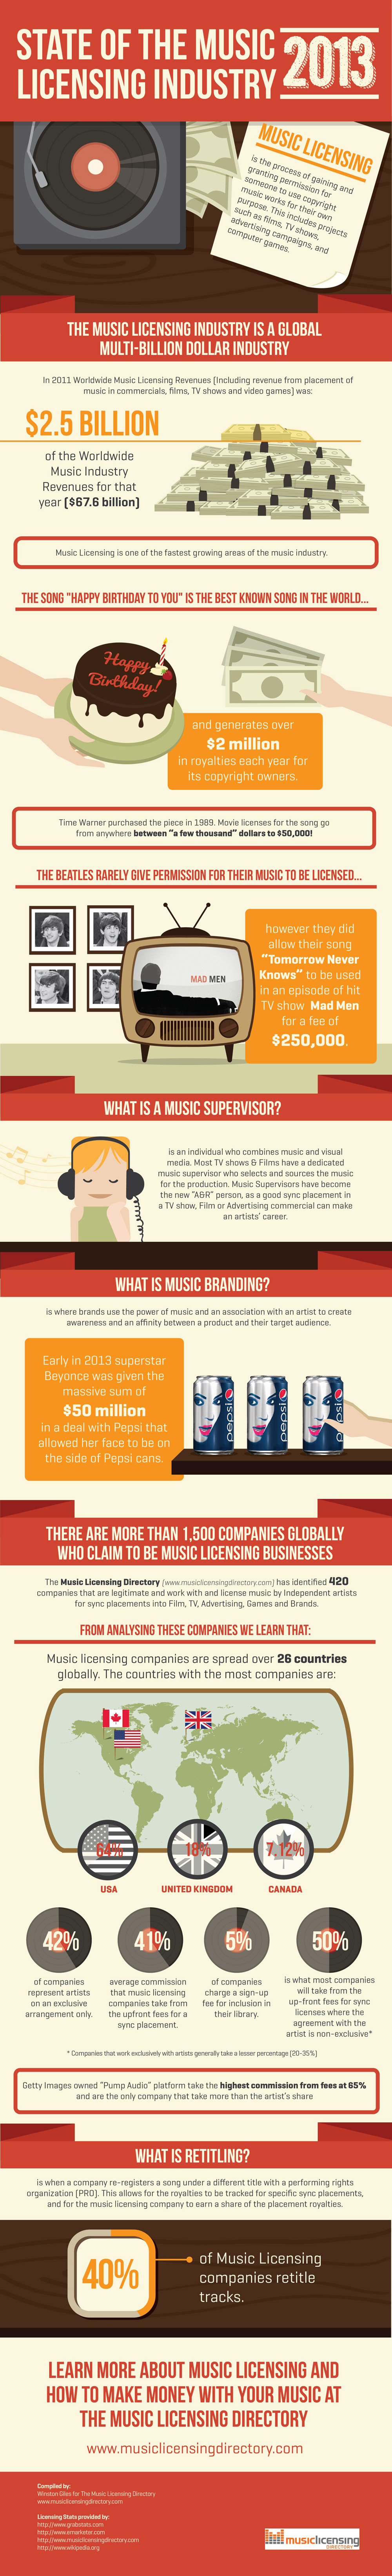 6. State of the Music Licensing Industry